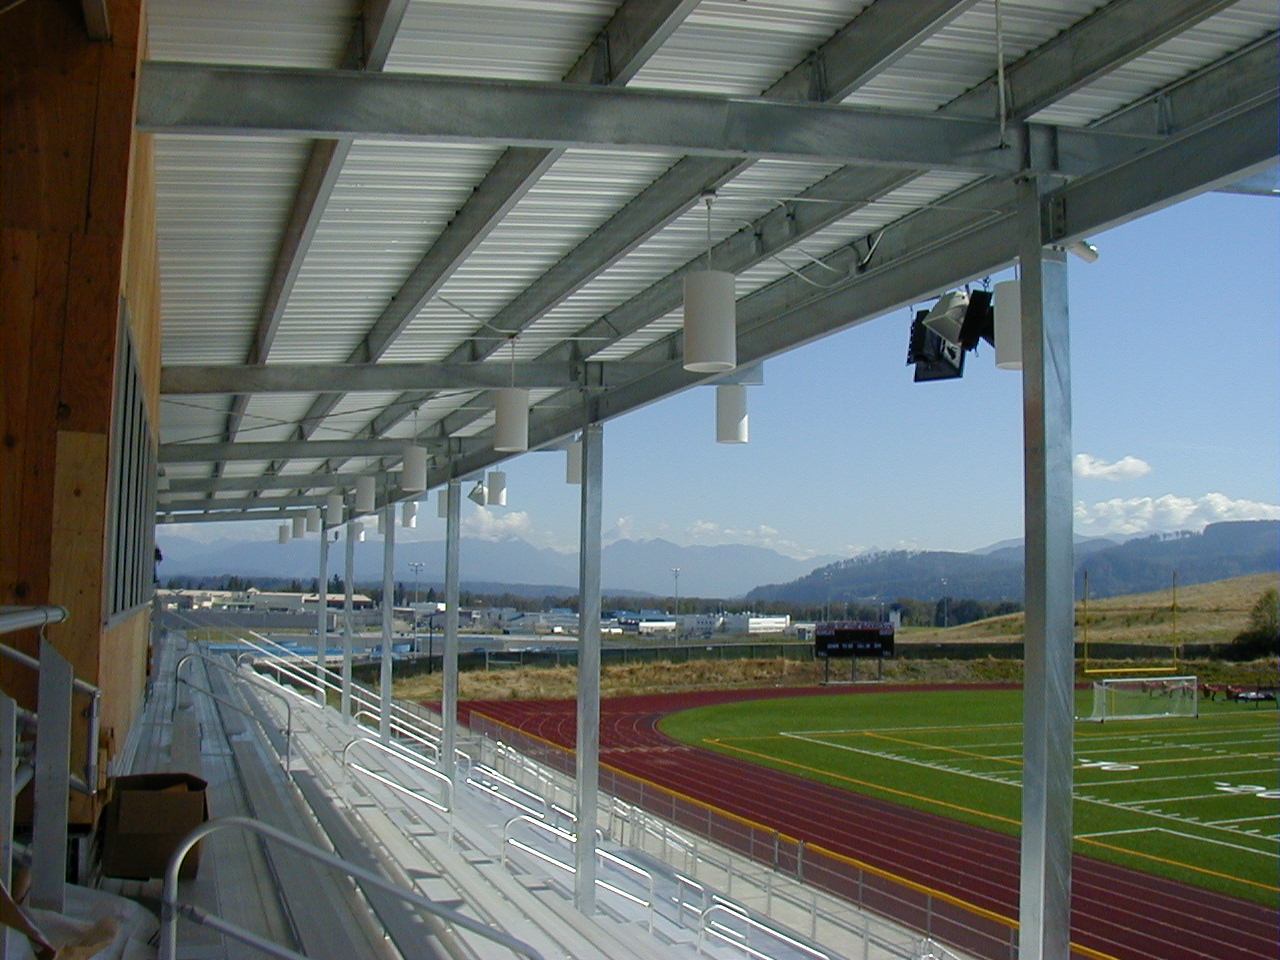 Picture from bleachers over looking the track at the Monroe High School Stadium